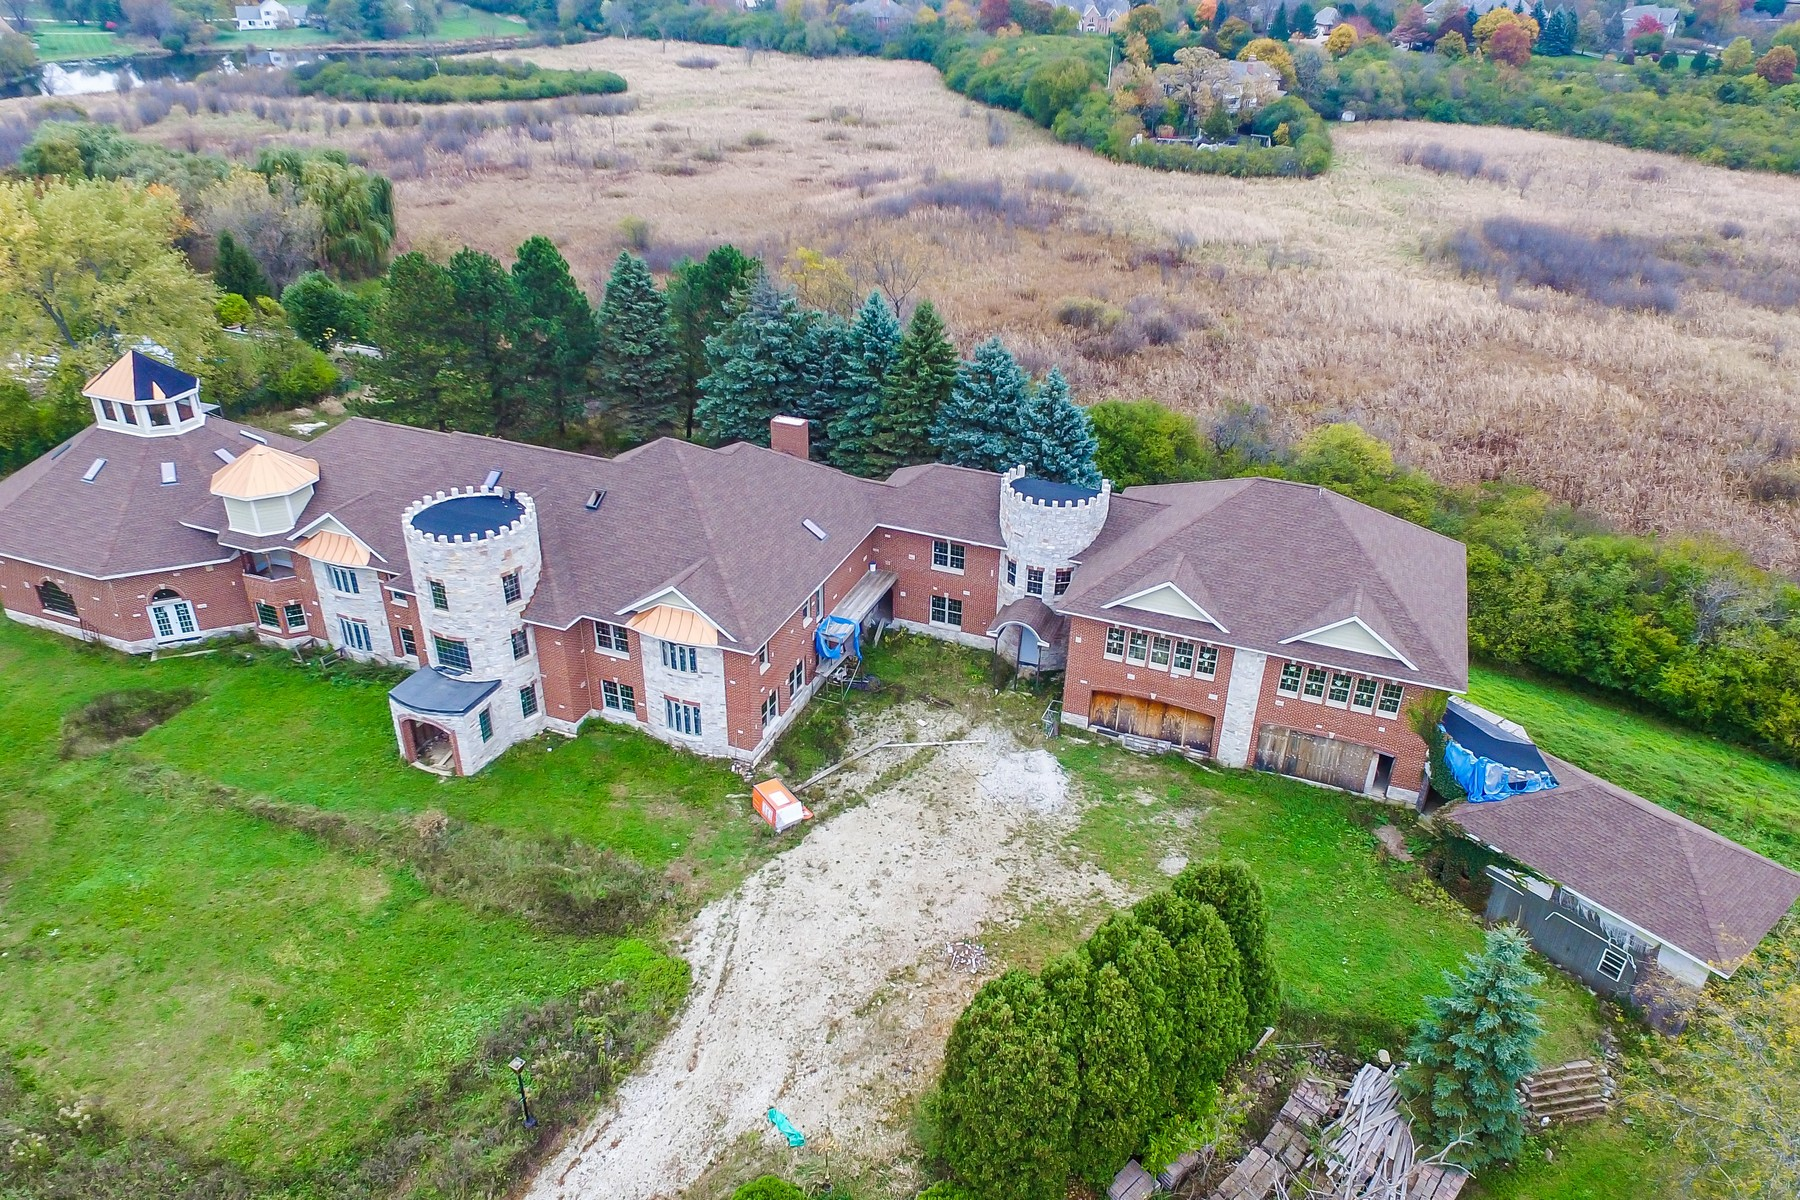 Single Family Home for Sale at Eight Bedroom Stunning Barrington Estate 24575 N Illinois Route 59 Road Barrington, Illinois, 60010 United States